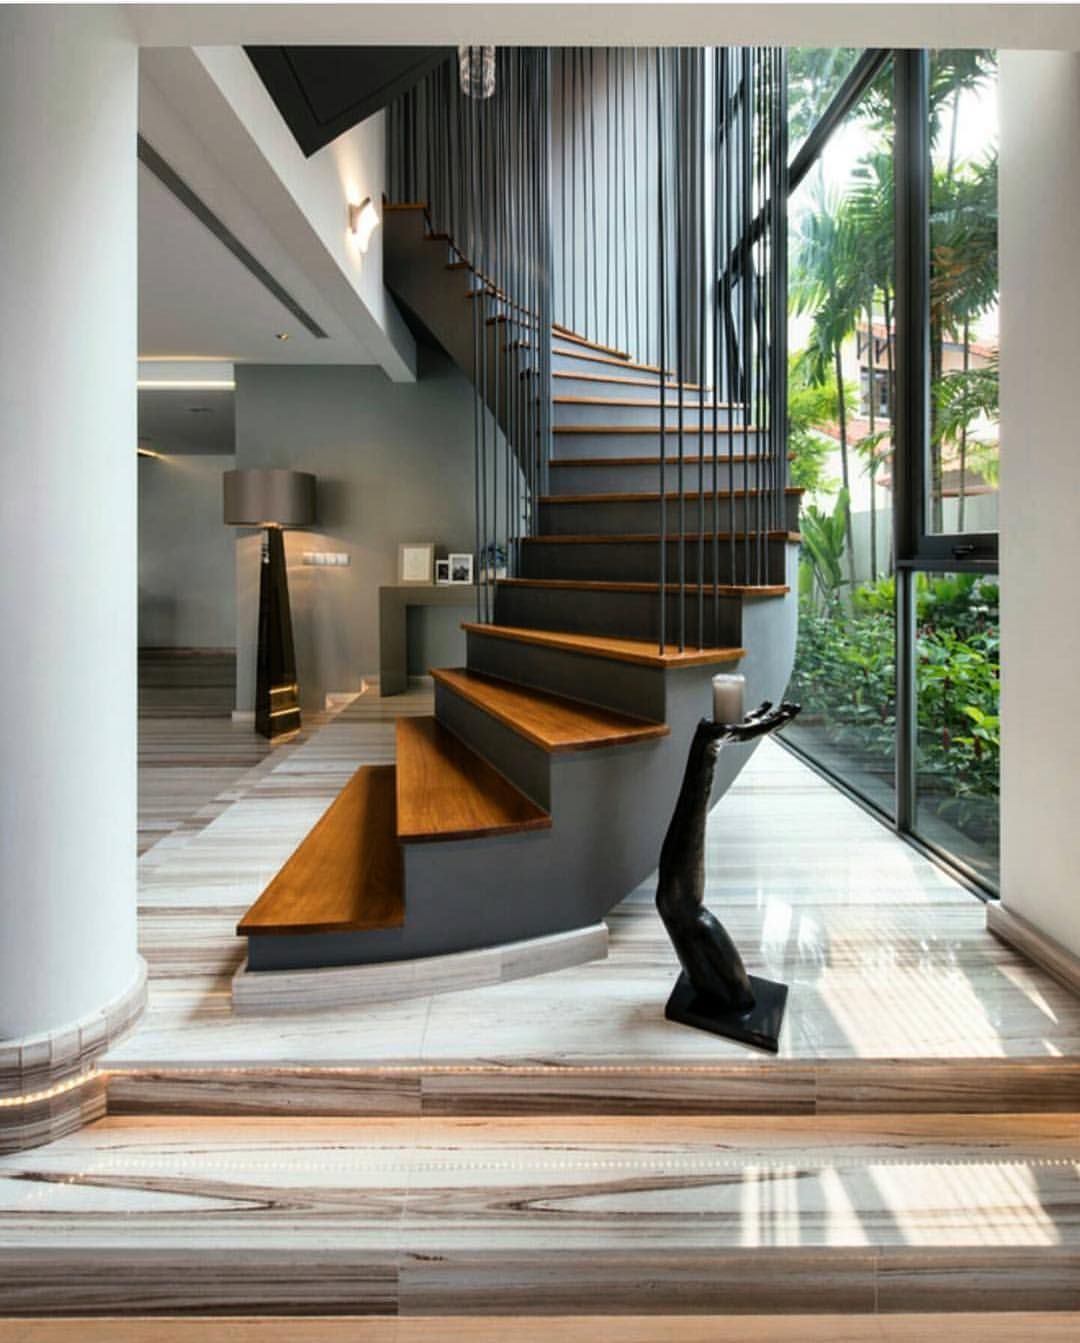 Art Architecture On Instagram East Singapore Residence By Cube Associate Interior Design Architects